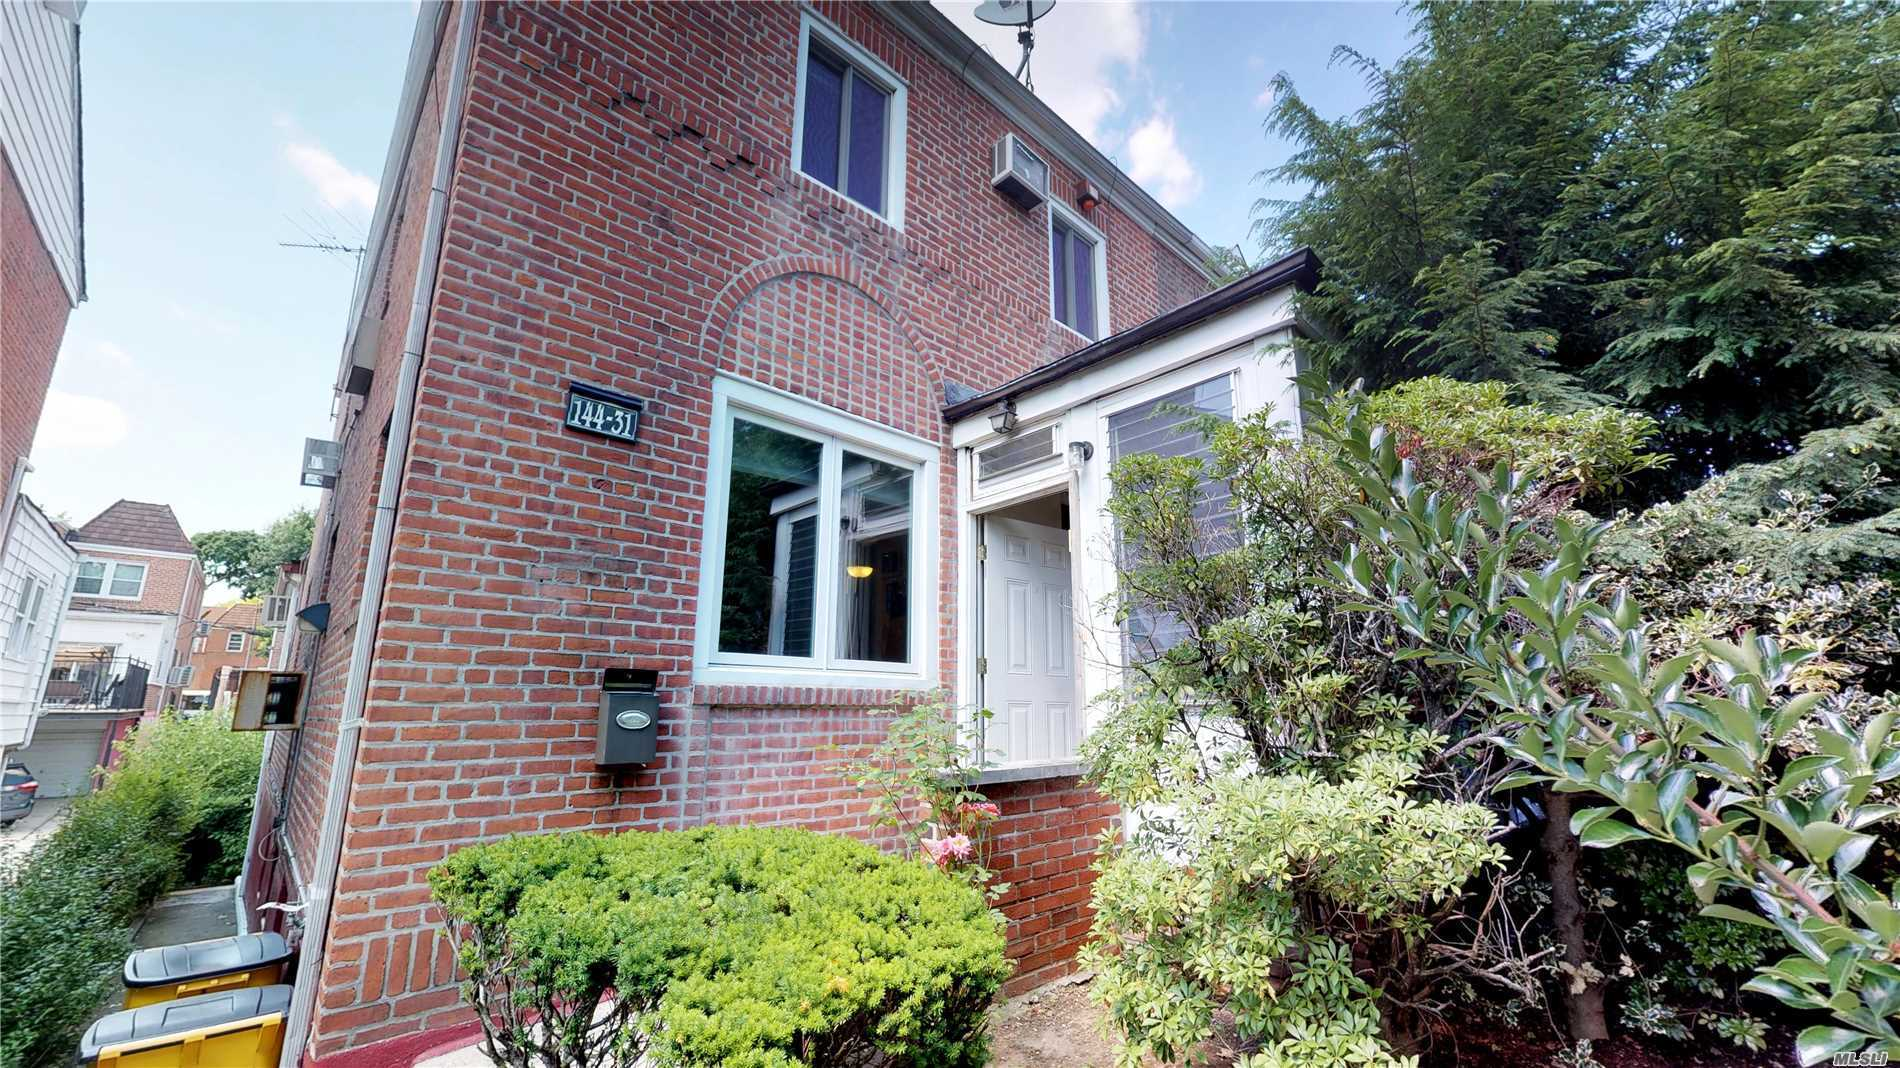 Price Slashed. Deep Discount. Sweet Opportunity For Completely Renovated 3Br-2.5Ba Expanded Colonial Gem In The Heart Of Kew Garden Hills, Large Deck, Finished Walk-In Mother-Daughter Basement, & Finished Attic. 2180 Sqft On 25X100 Lot & Deep 20X38 Structure. Excellent Location! Entirely Move-In Ready. Gorgeous Interior, Conv 4th Br, Fine Neighborhood, Near Shops, Trains, Buses